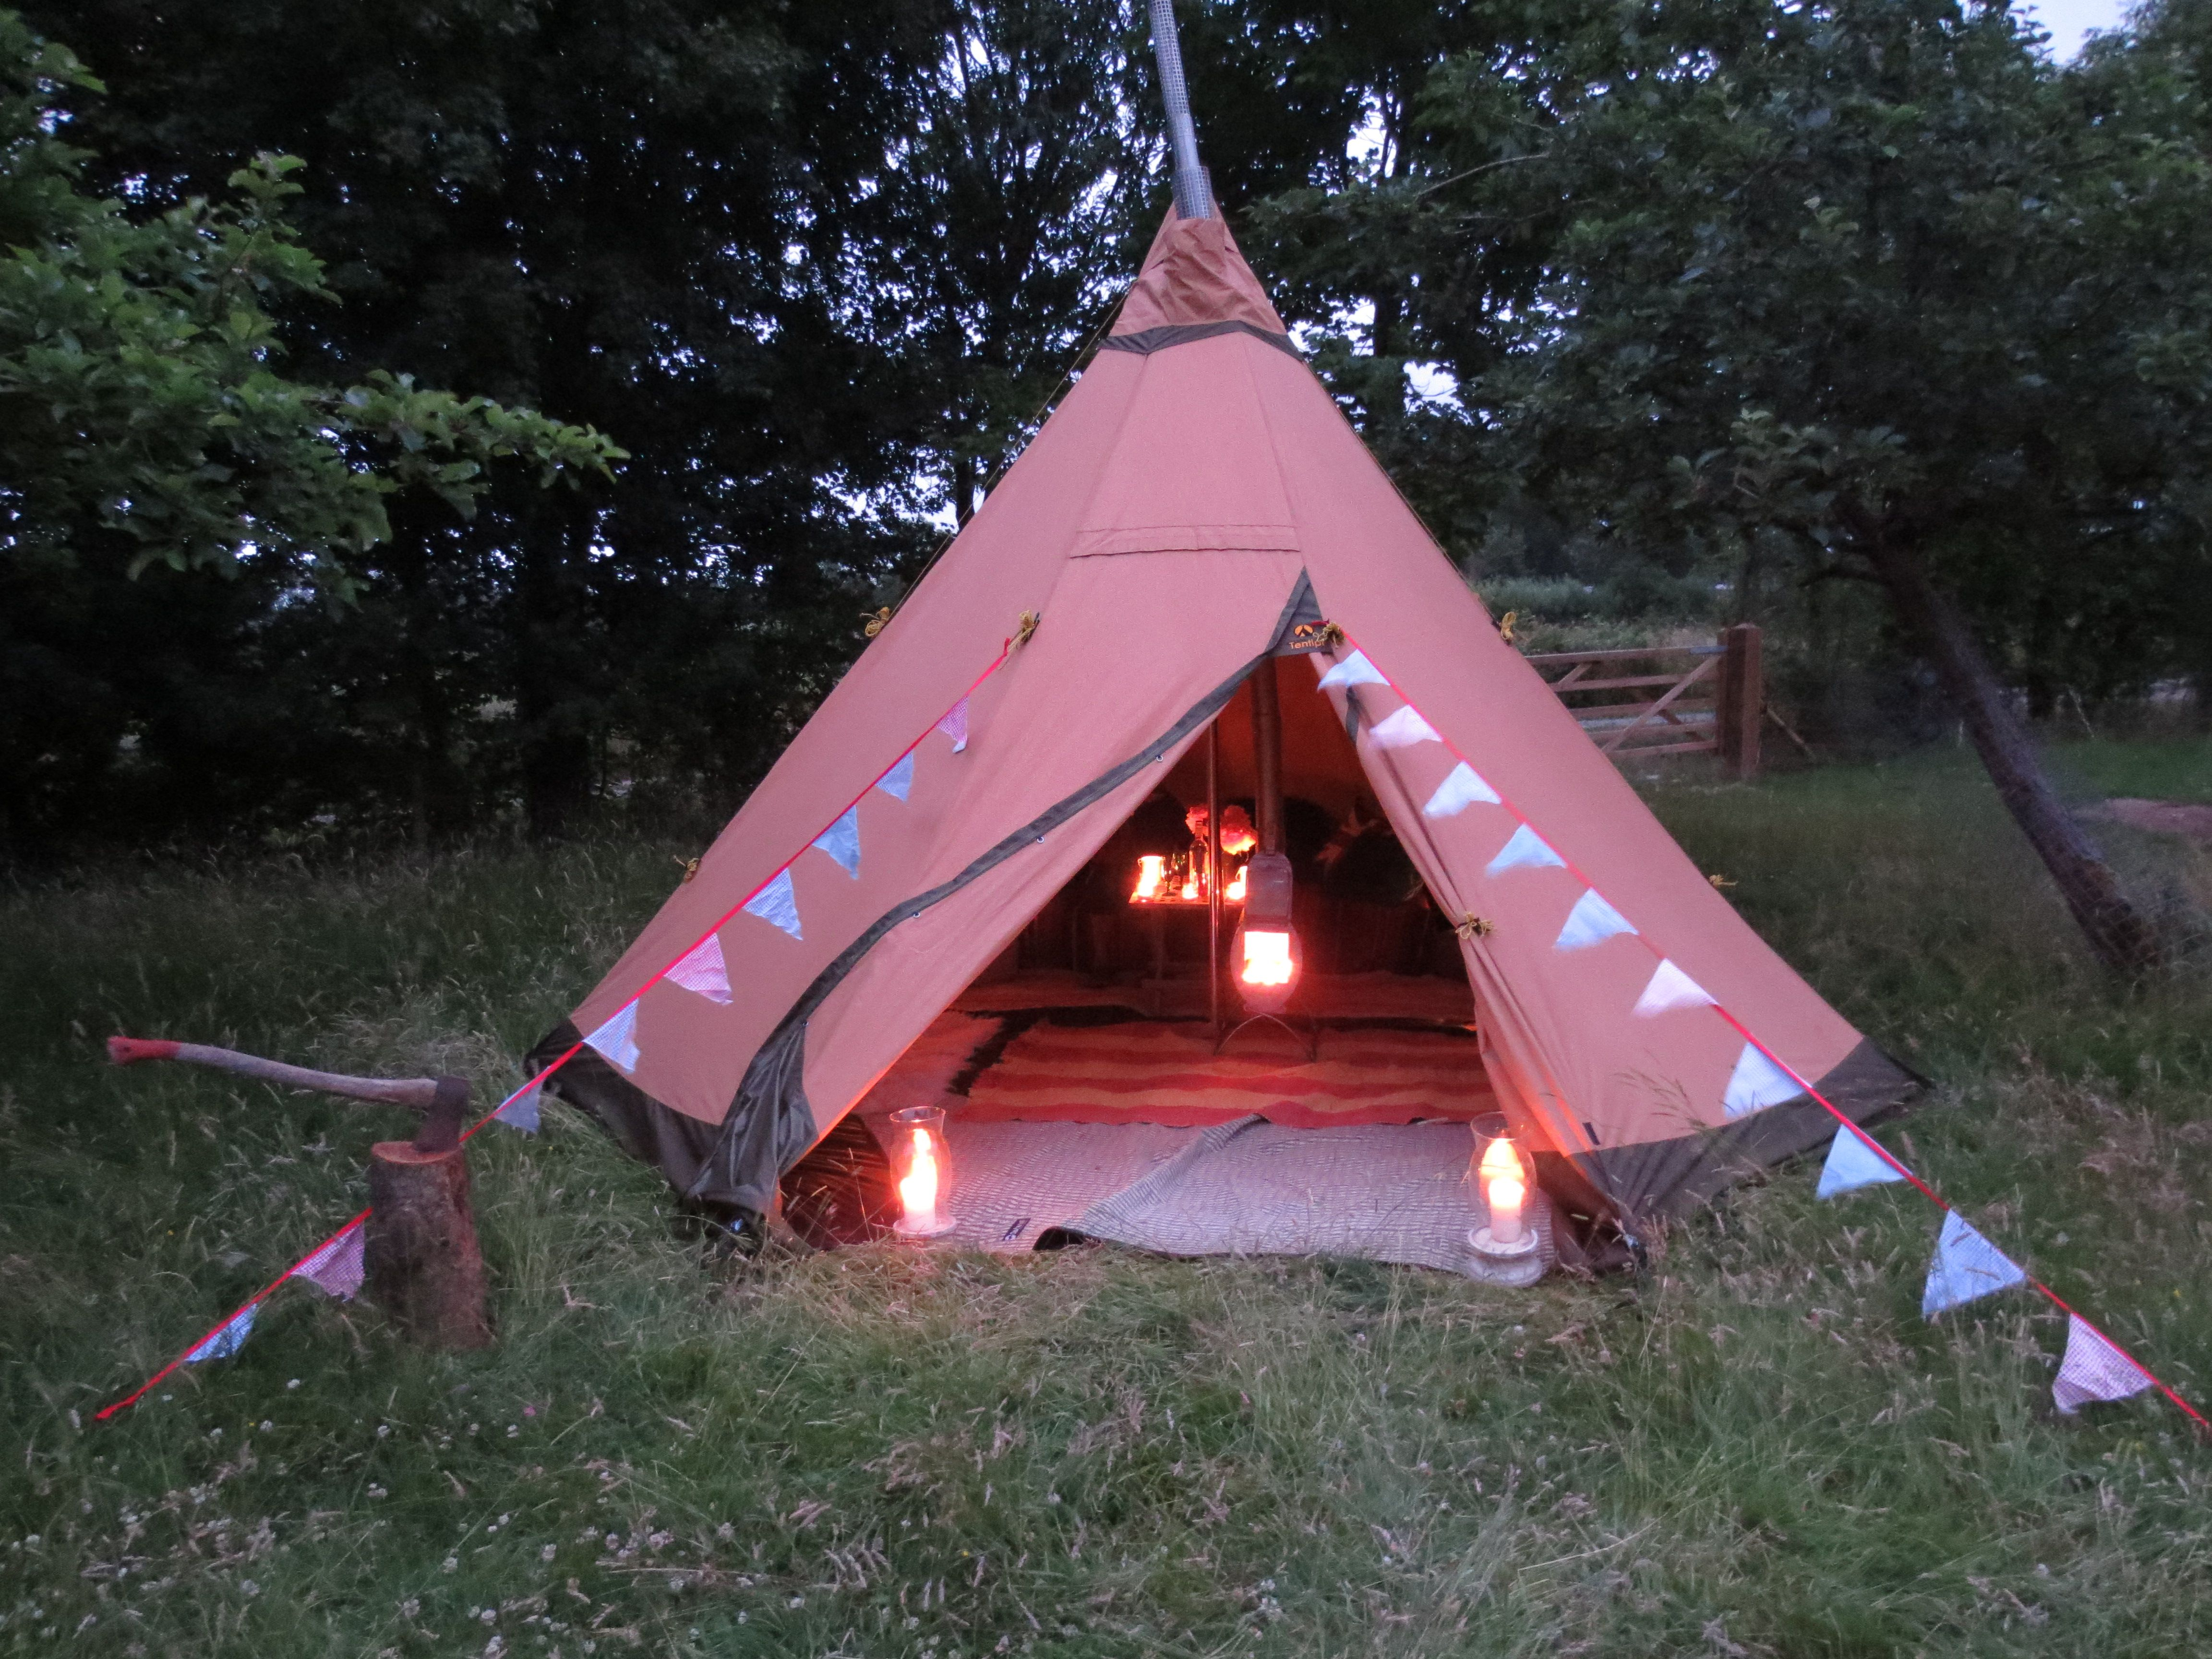 Tentipi Safir 9 Nordic Tipi Tent #c&ing #outdoors : outdoors tents - memphite.com